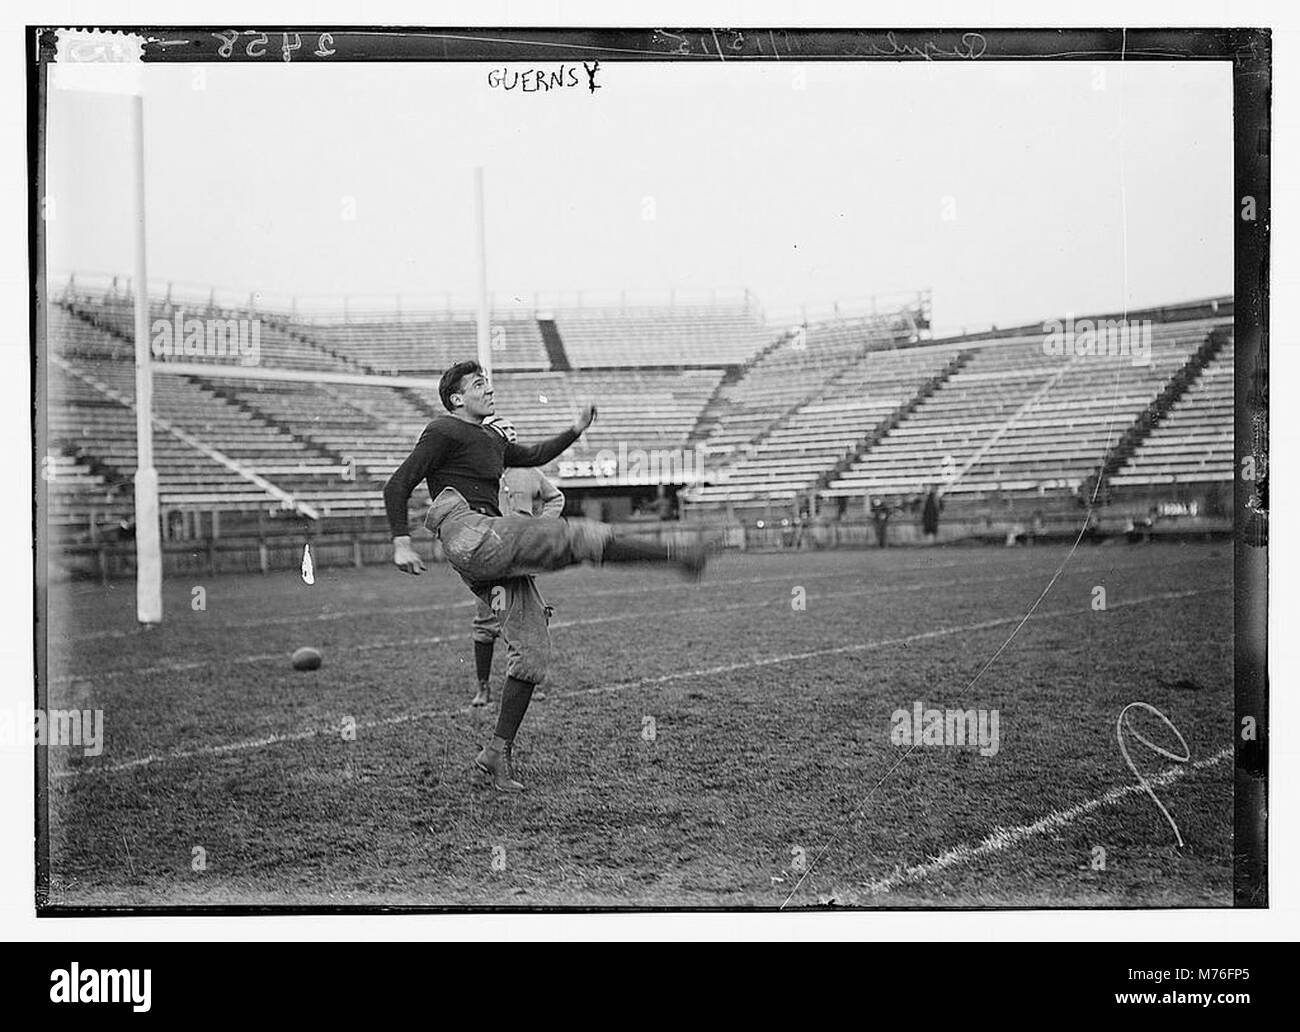 6a2479f8def Yale Football Stock Photos   Yale Football Stock Images - Page 2 - Alamy